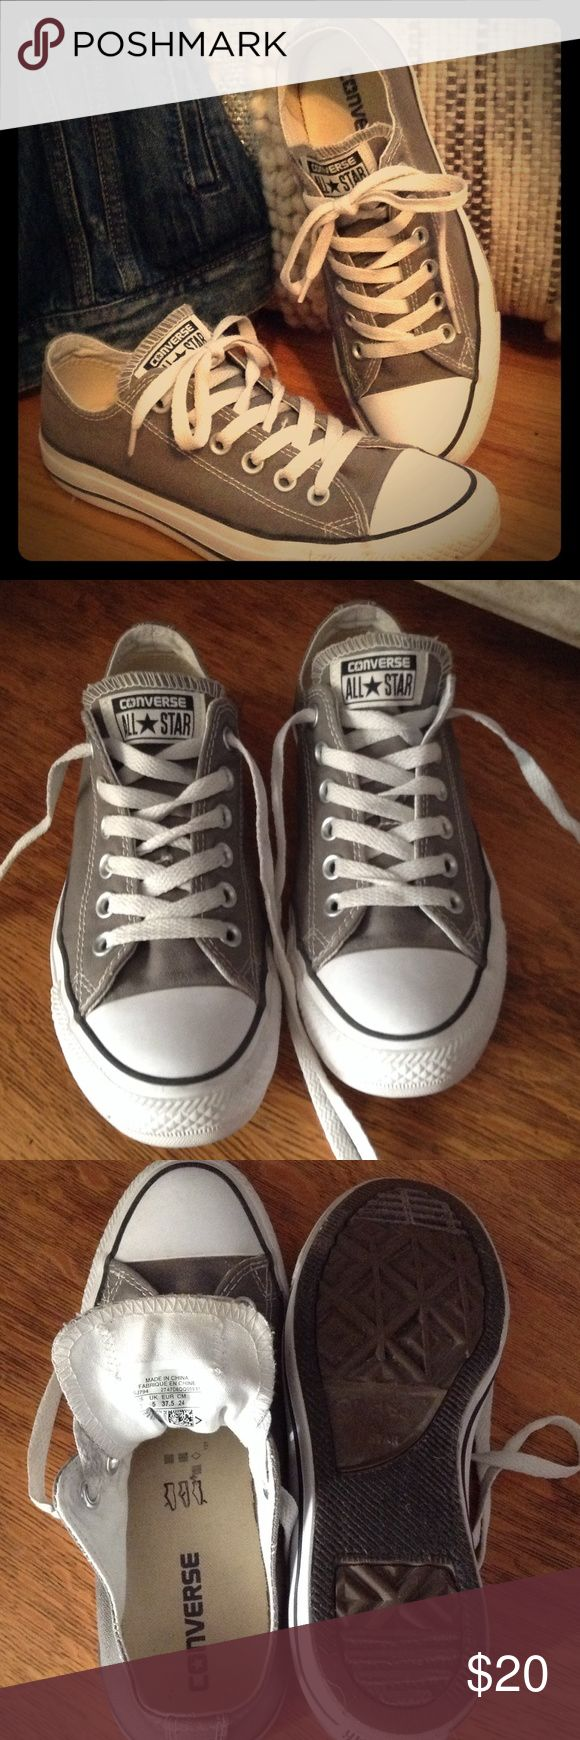 Converse All Star Shoes Size 7 women. Worn only a few times. Grey with white seams. Converse Shoes Sneakers